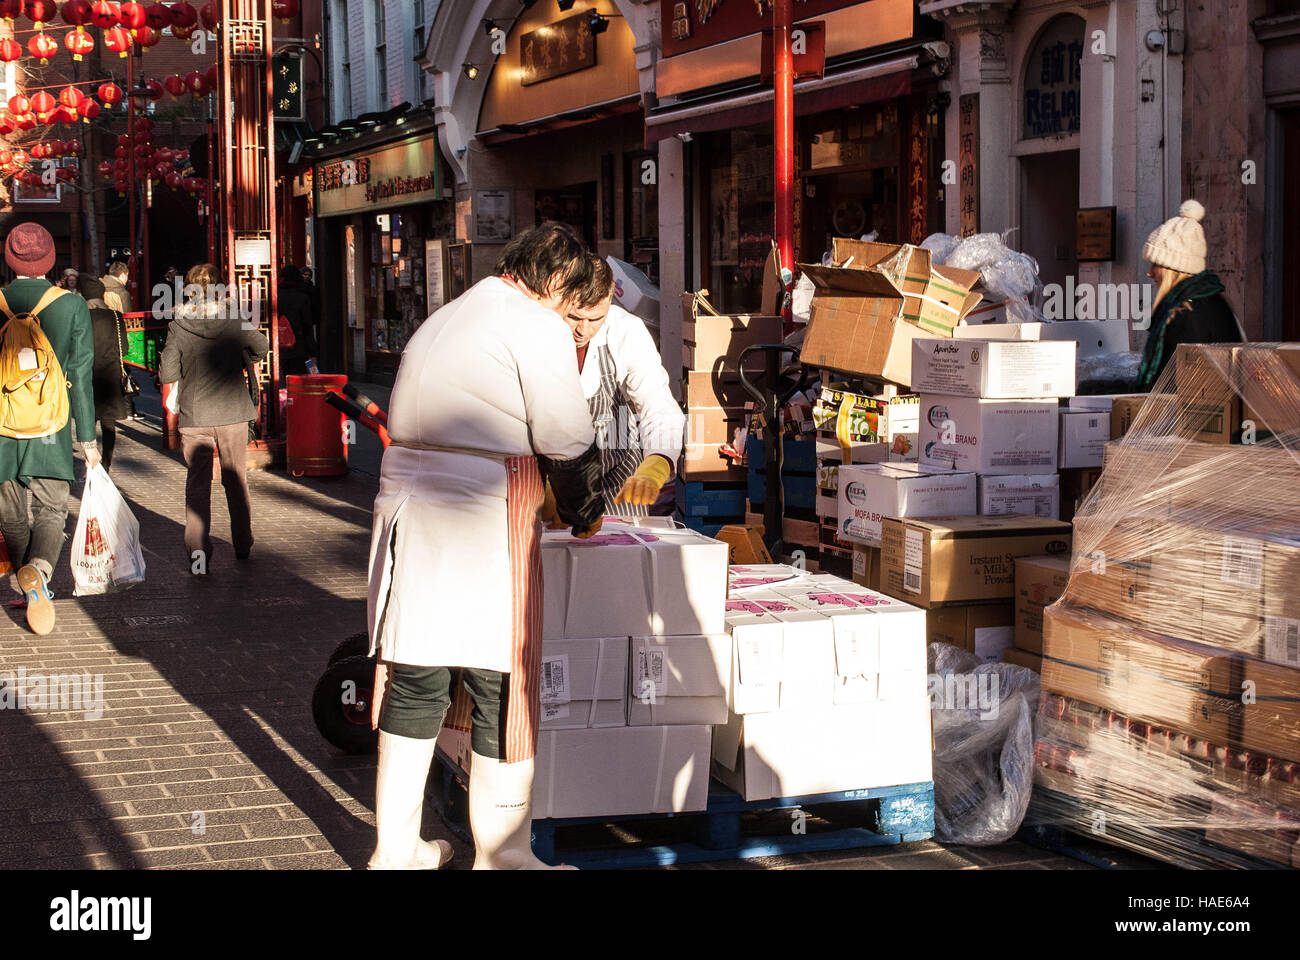 Unwrapping in China Town, London - Stock Image